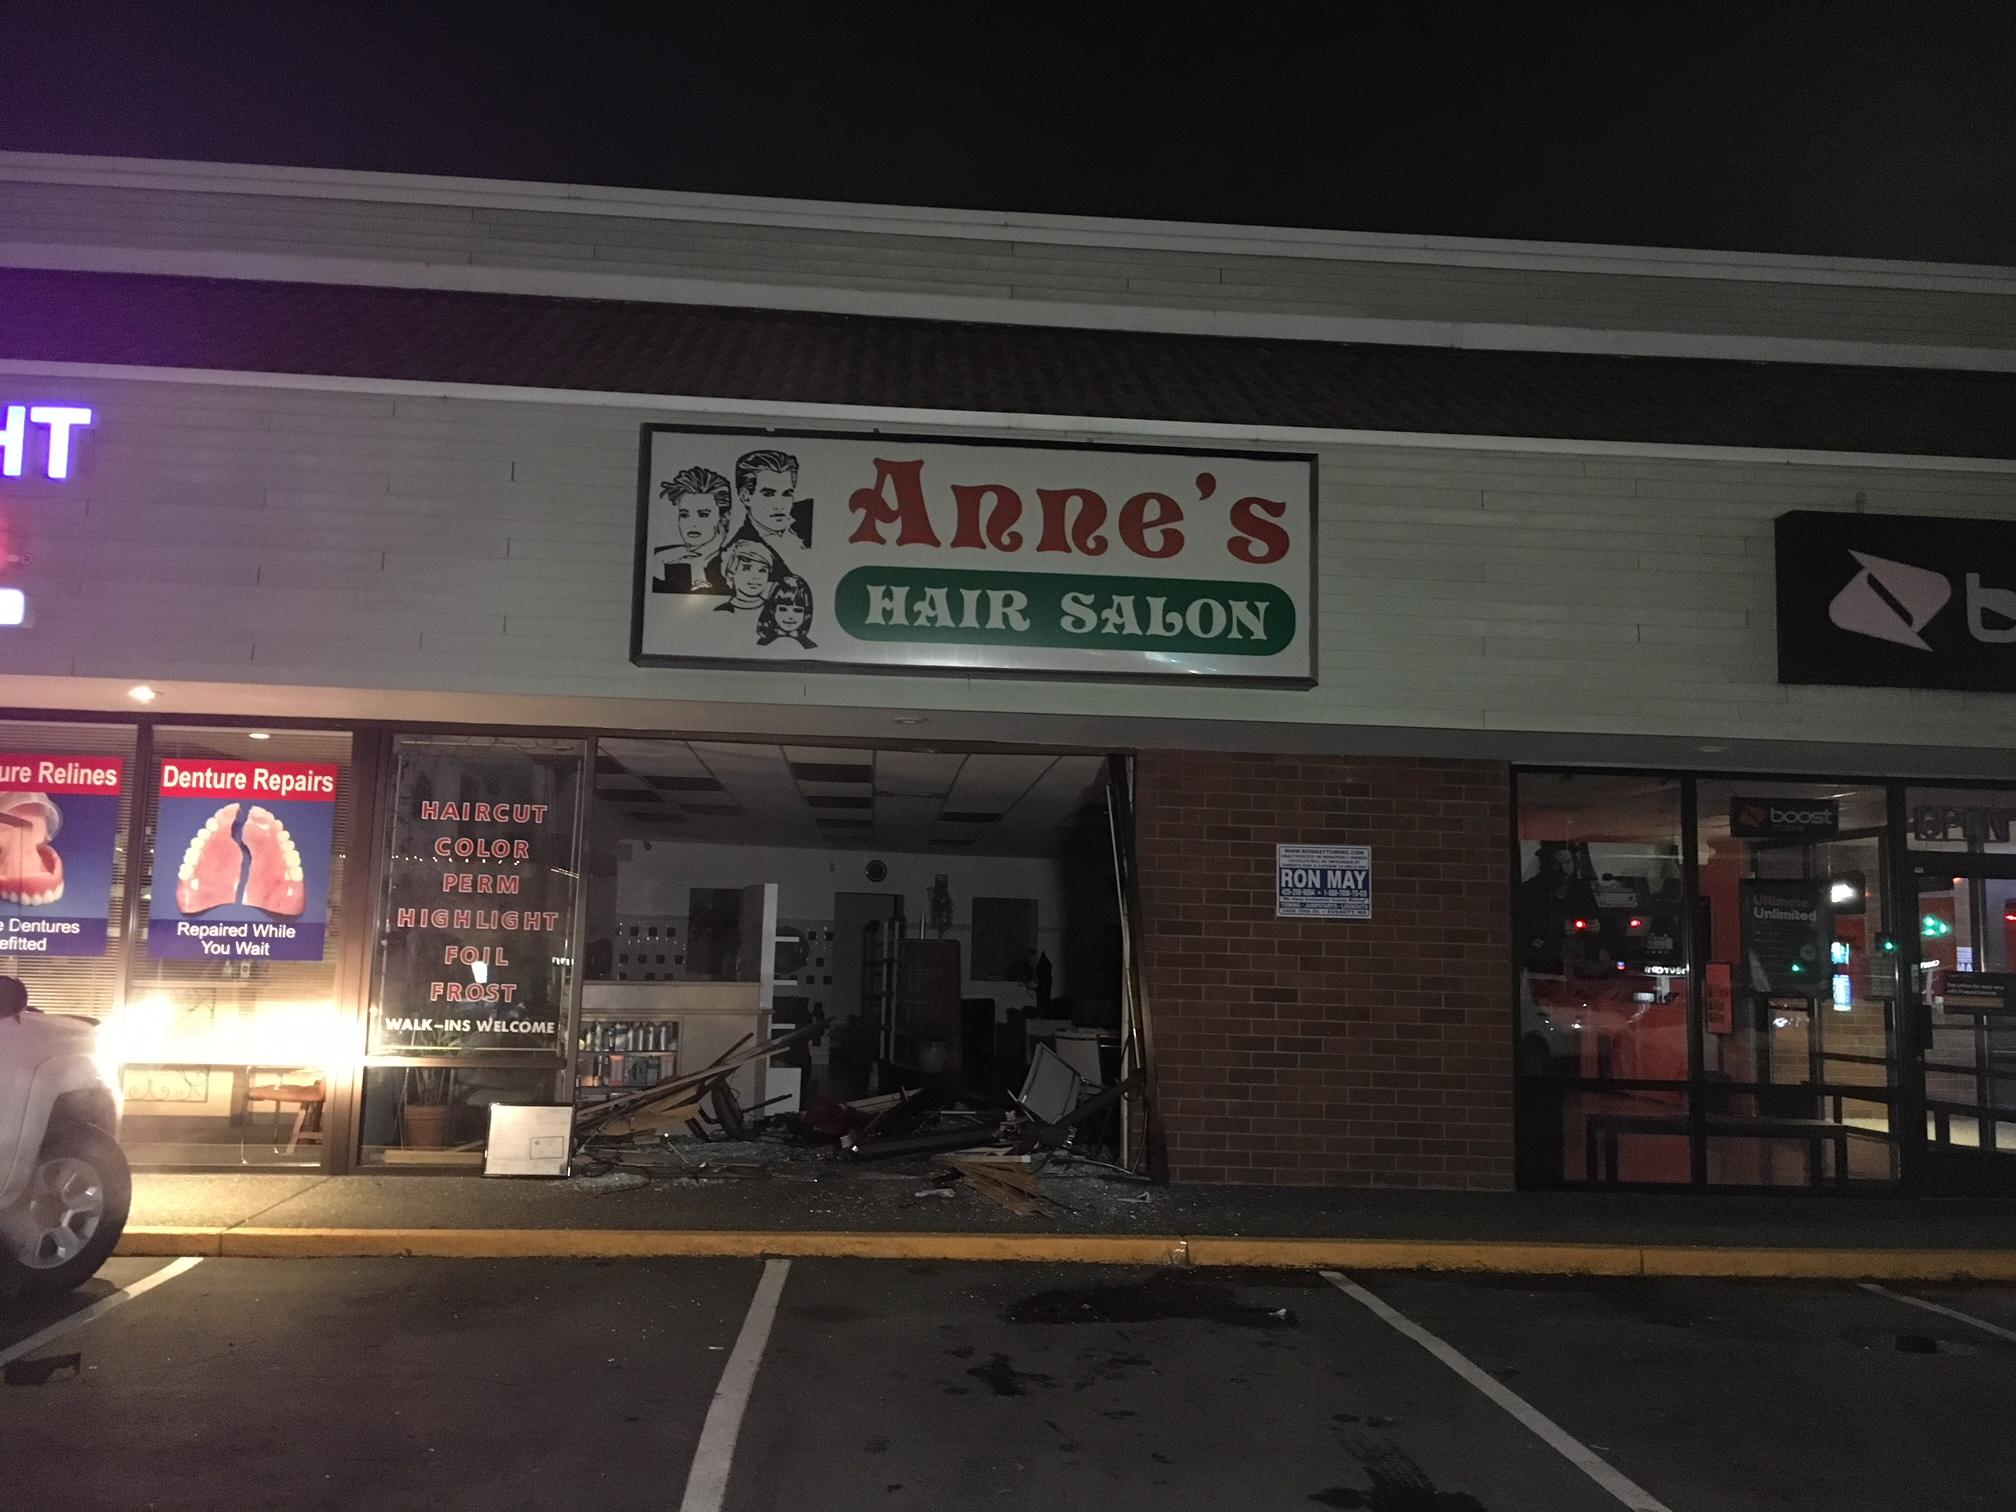 A suspected drunk driver damaged a business in Everett late Wednesday night. (Photo credit: Steven Miller)